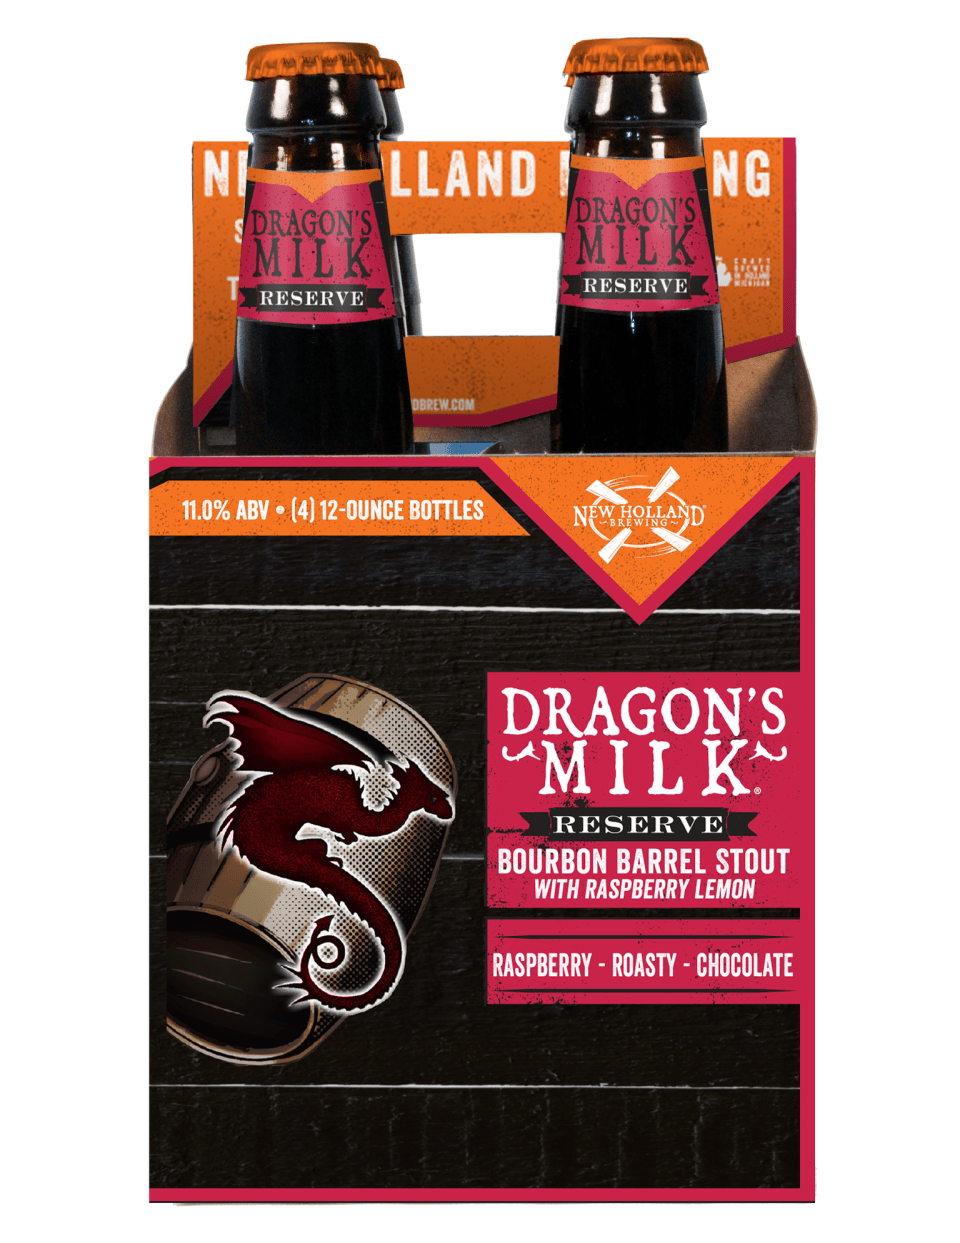 New Holland Raspberry Lemon Dragon's Milk